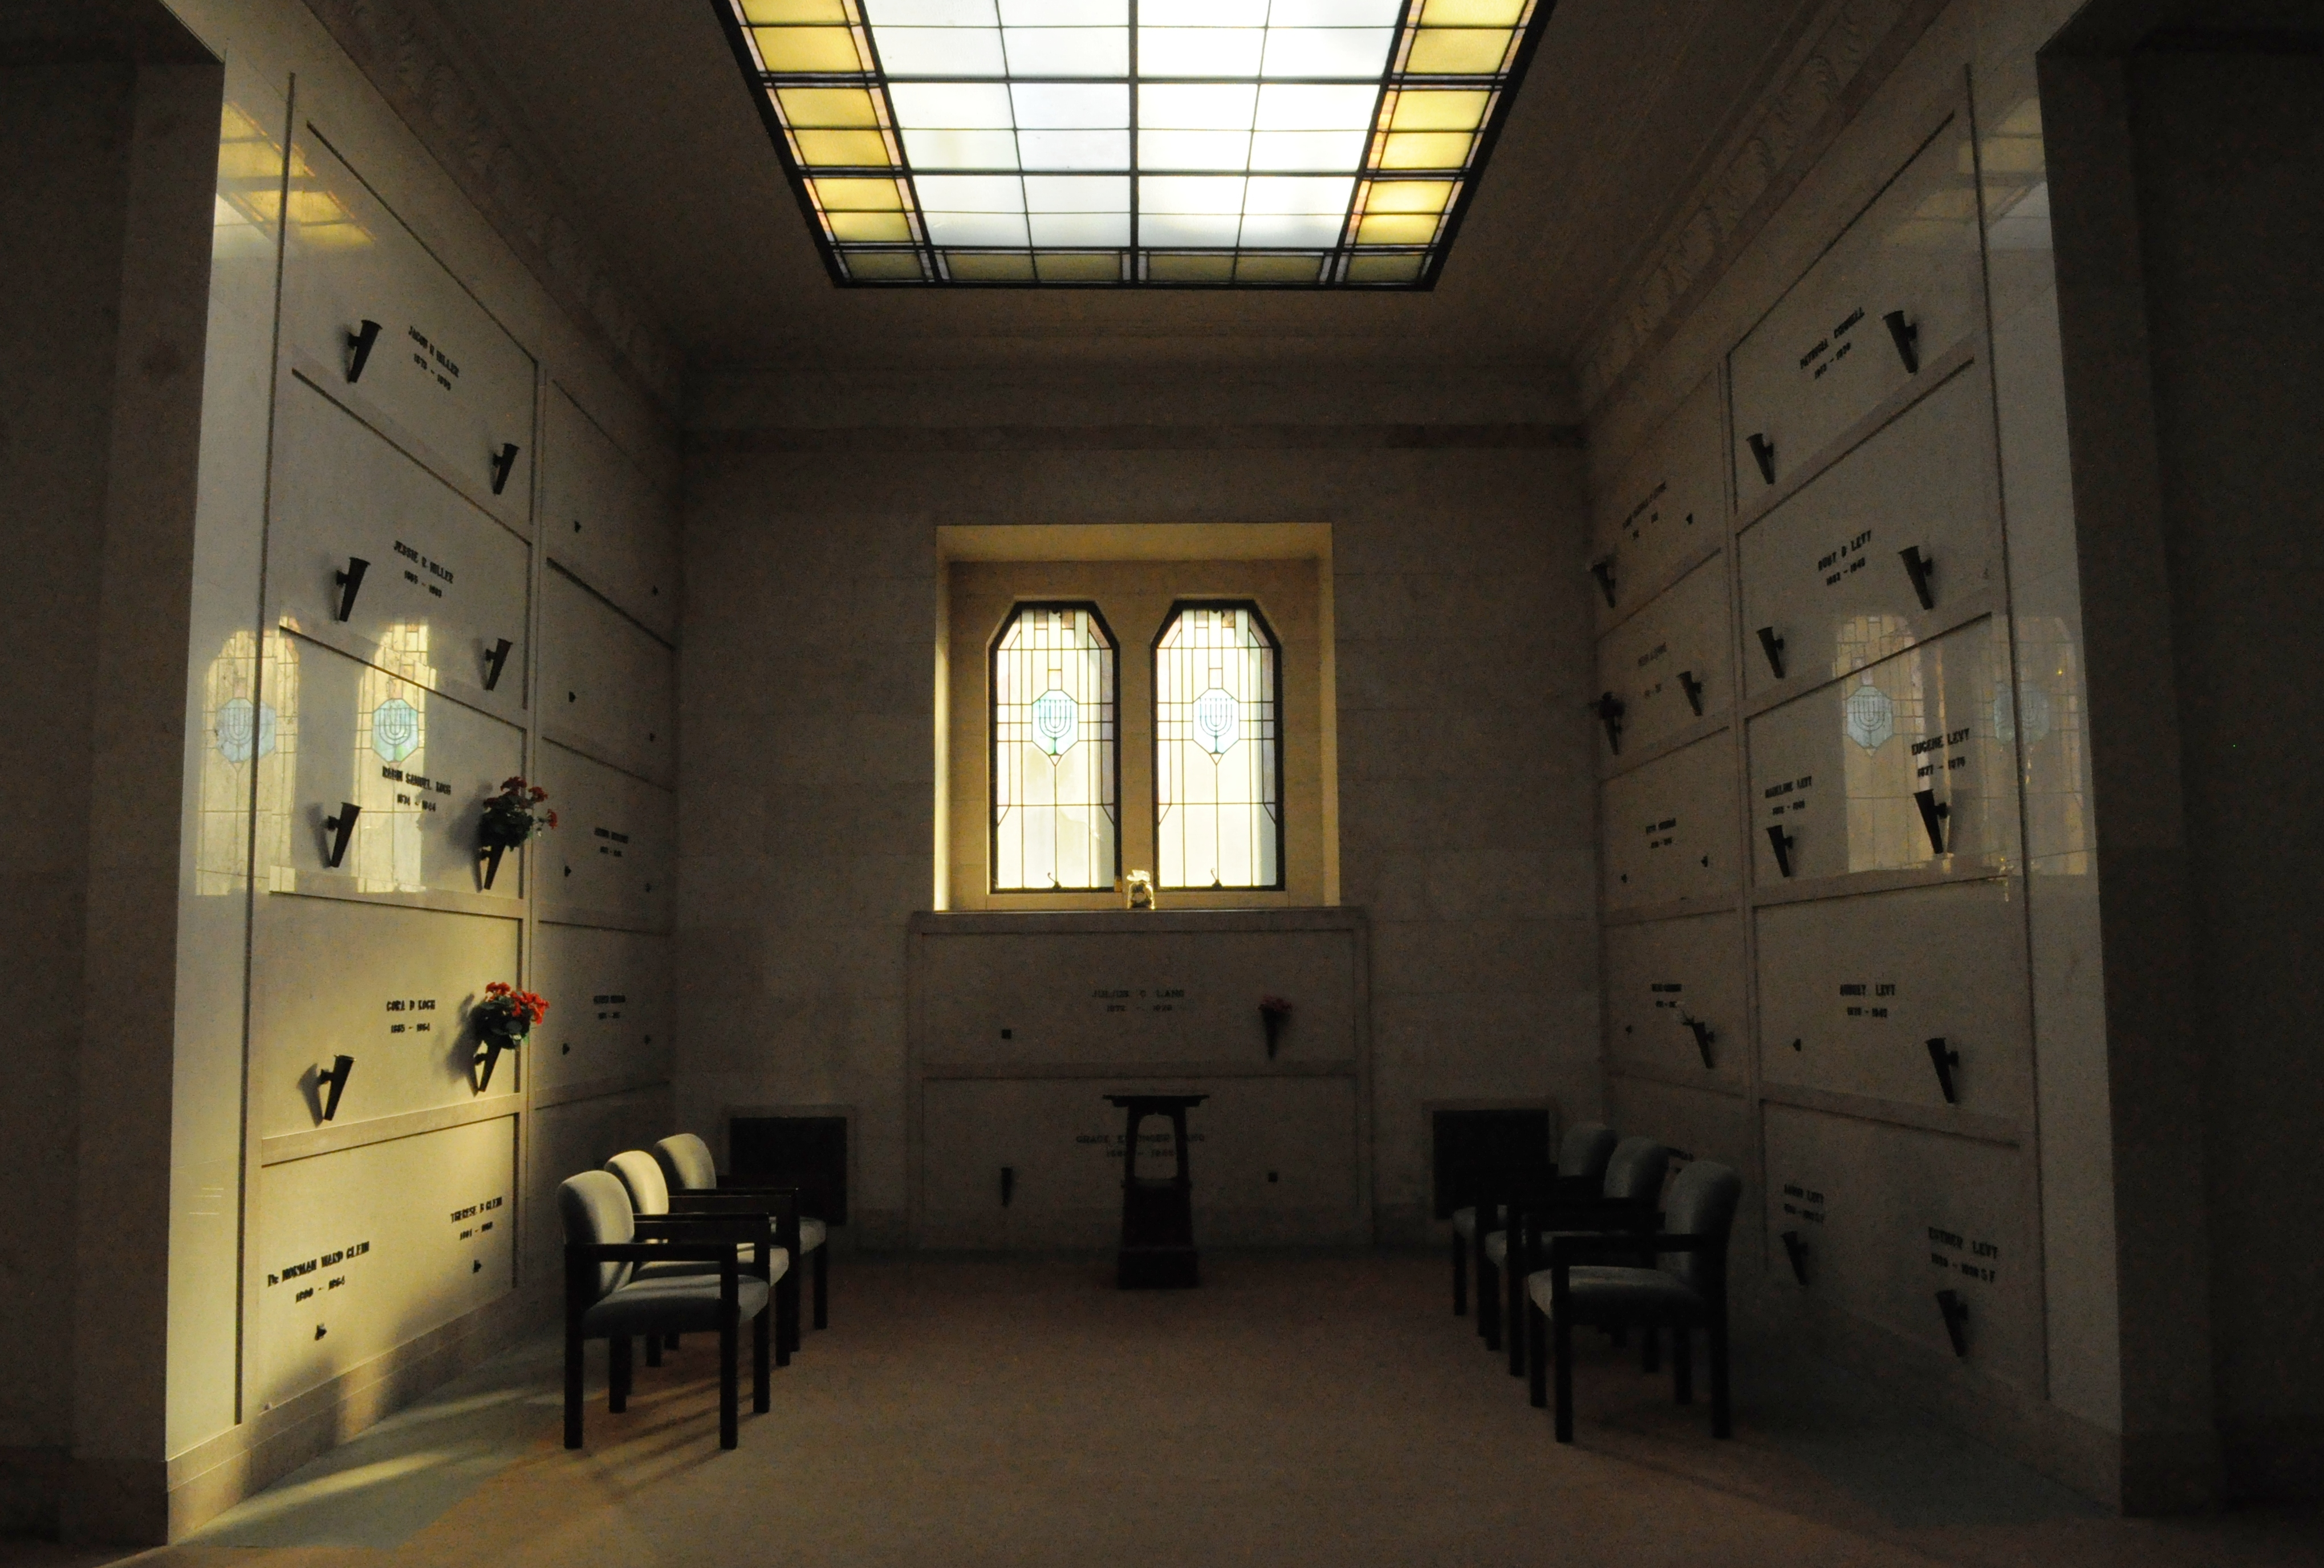 Related Keywords & Suggestions for Mausoleum Interior